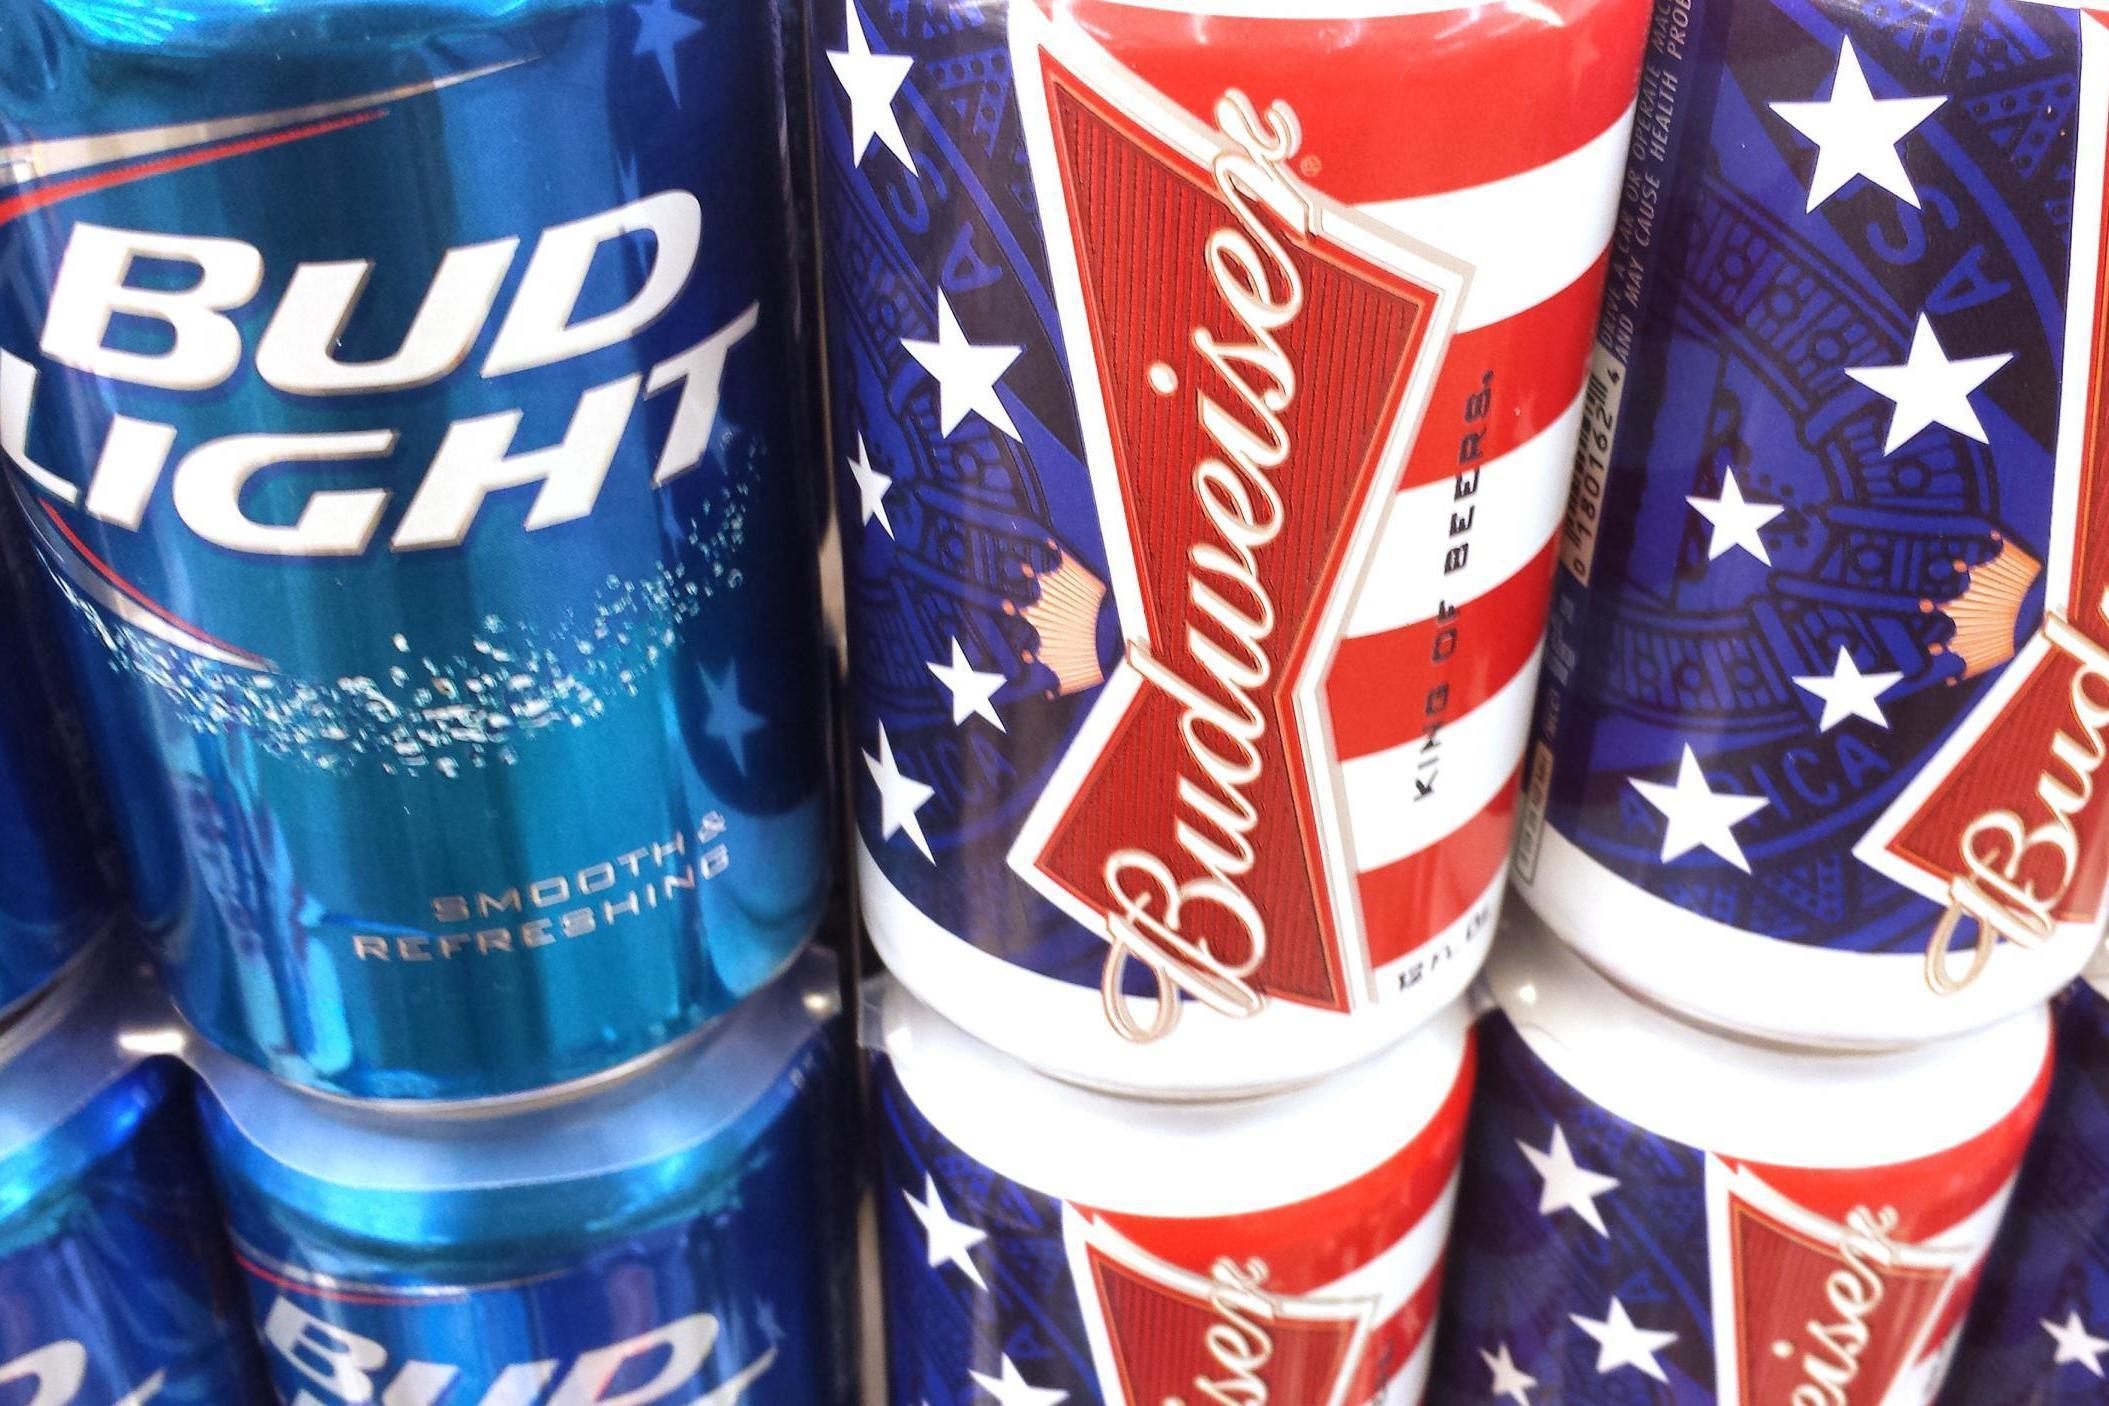 Bud Light brewer accuses rival of obtaining secret beer recipe in new lawsuit 1